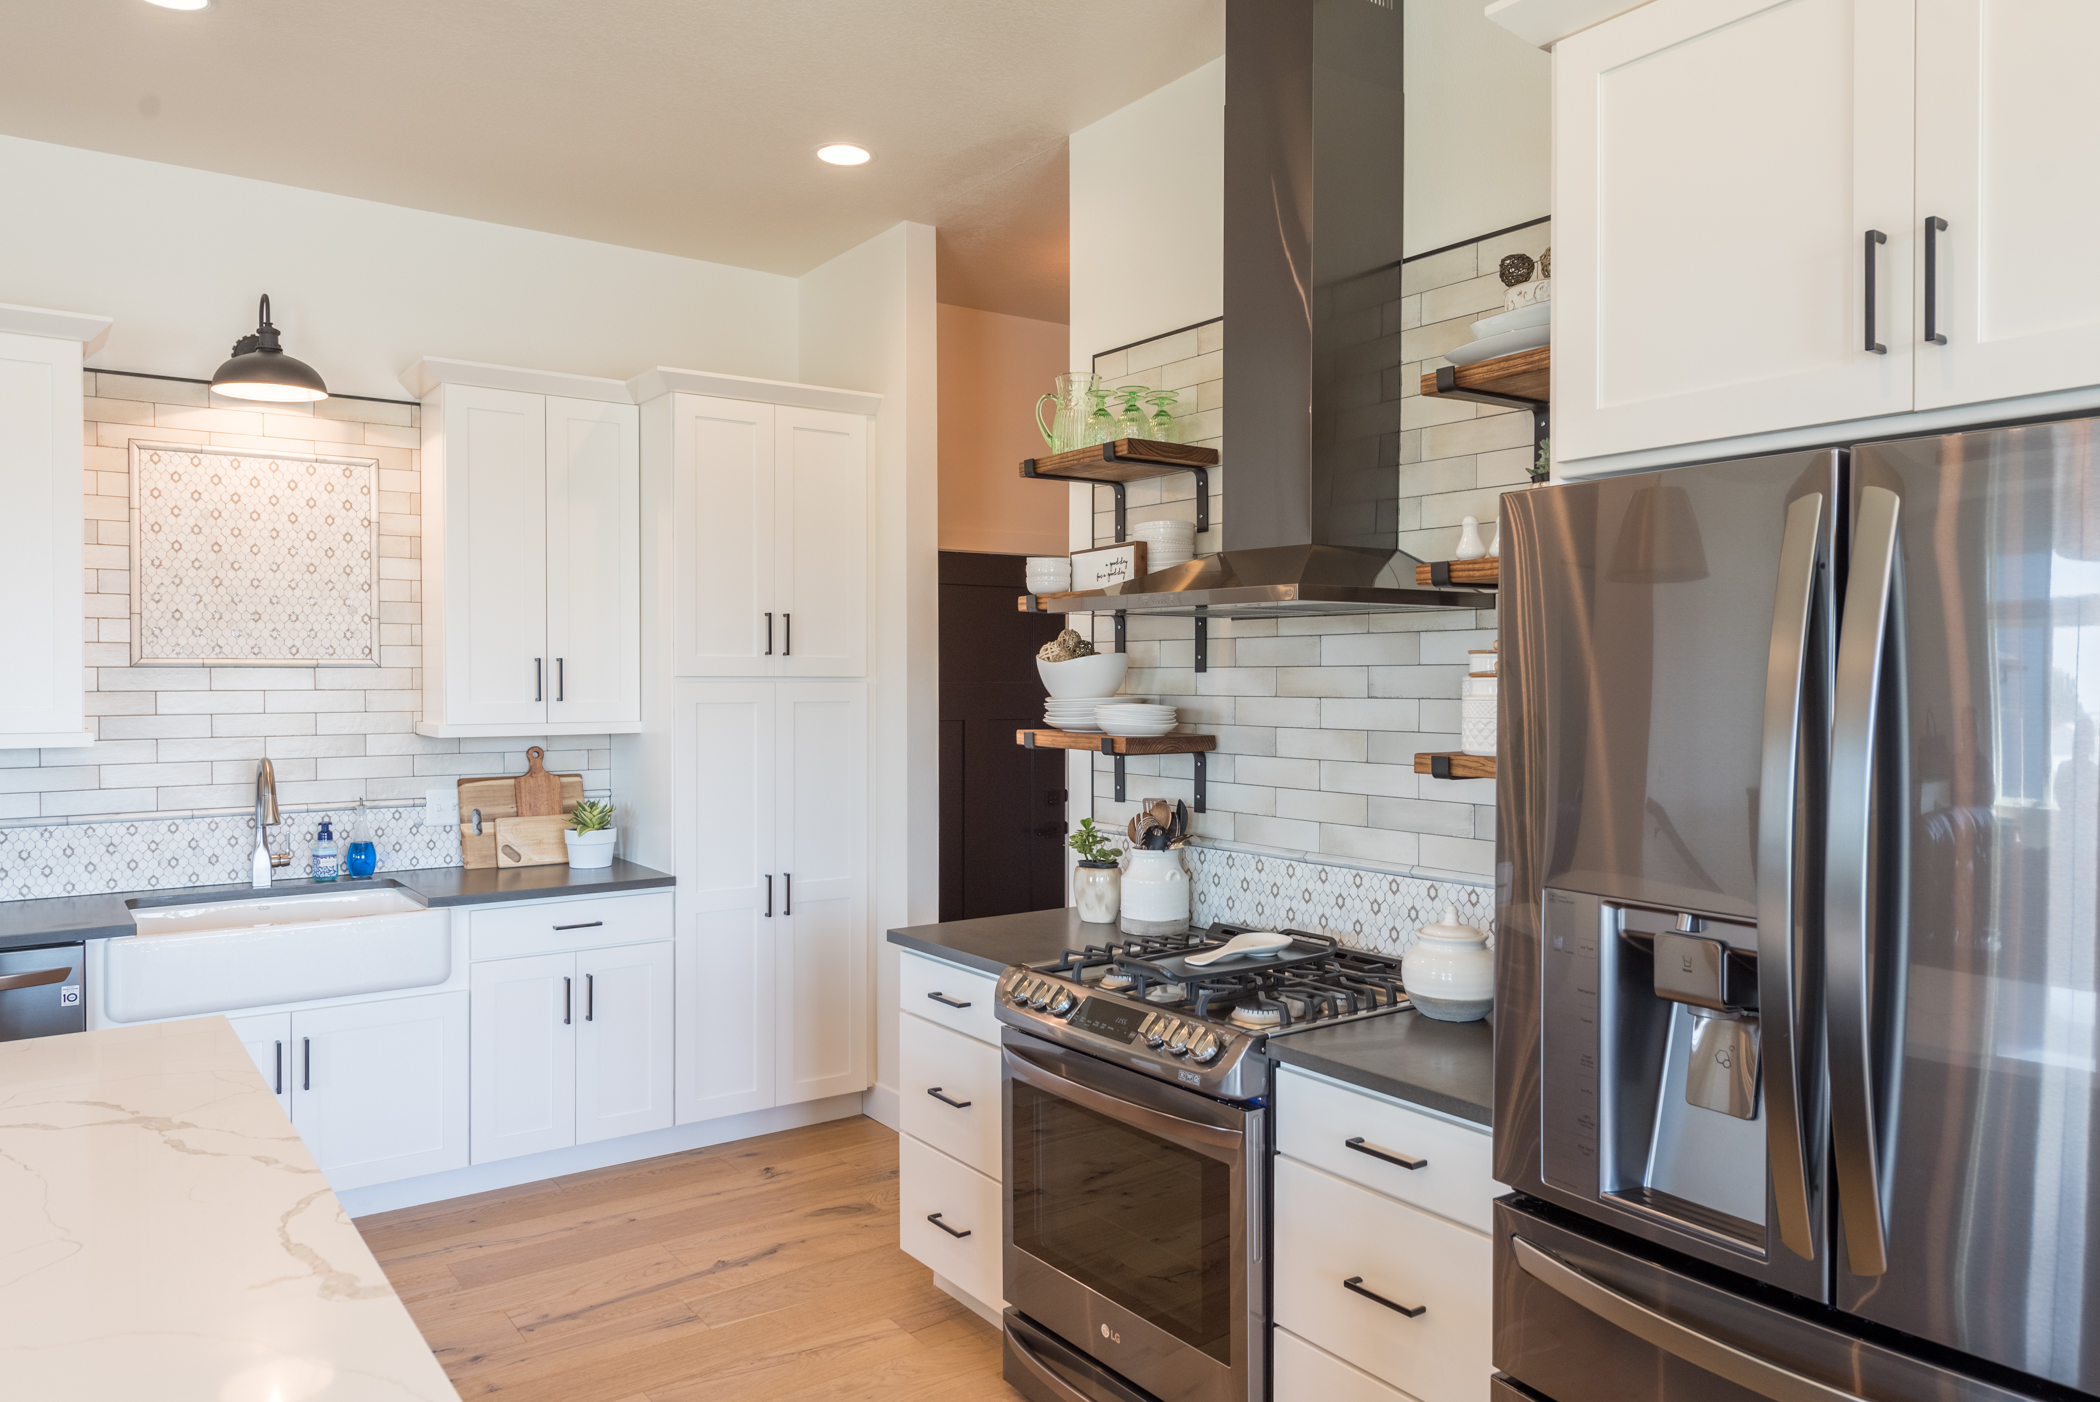 Kitchen with white cabinetry, tile backsplashes, stainless steel appliances with oven hood